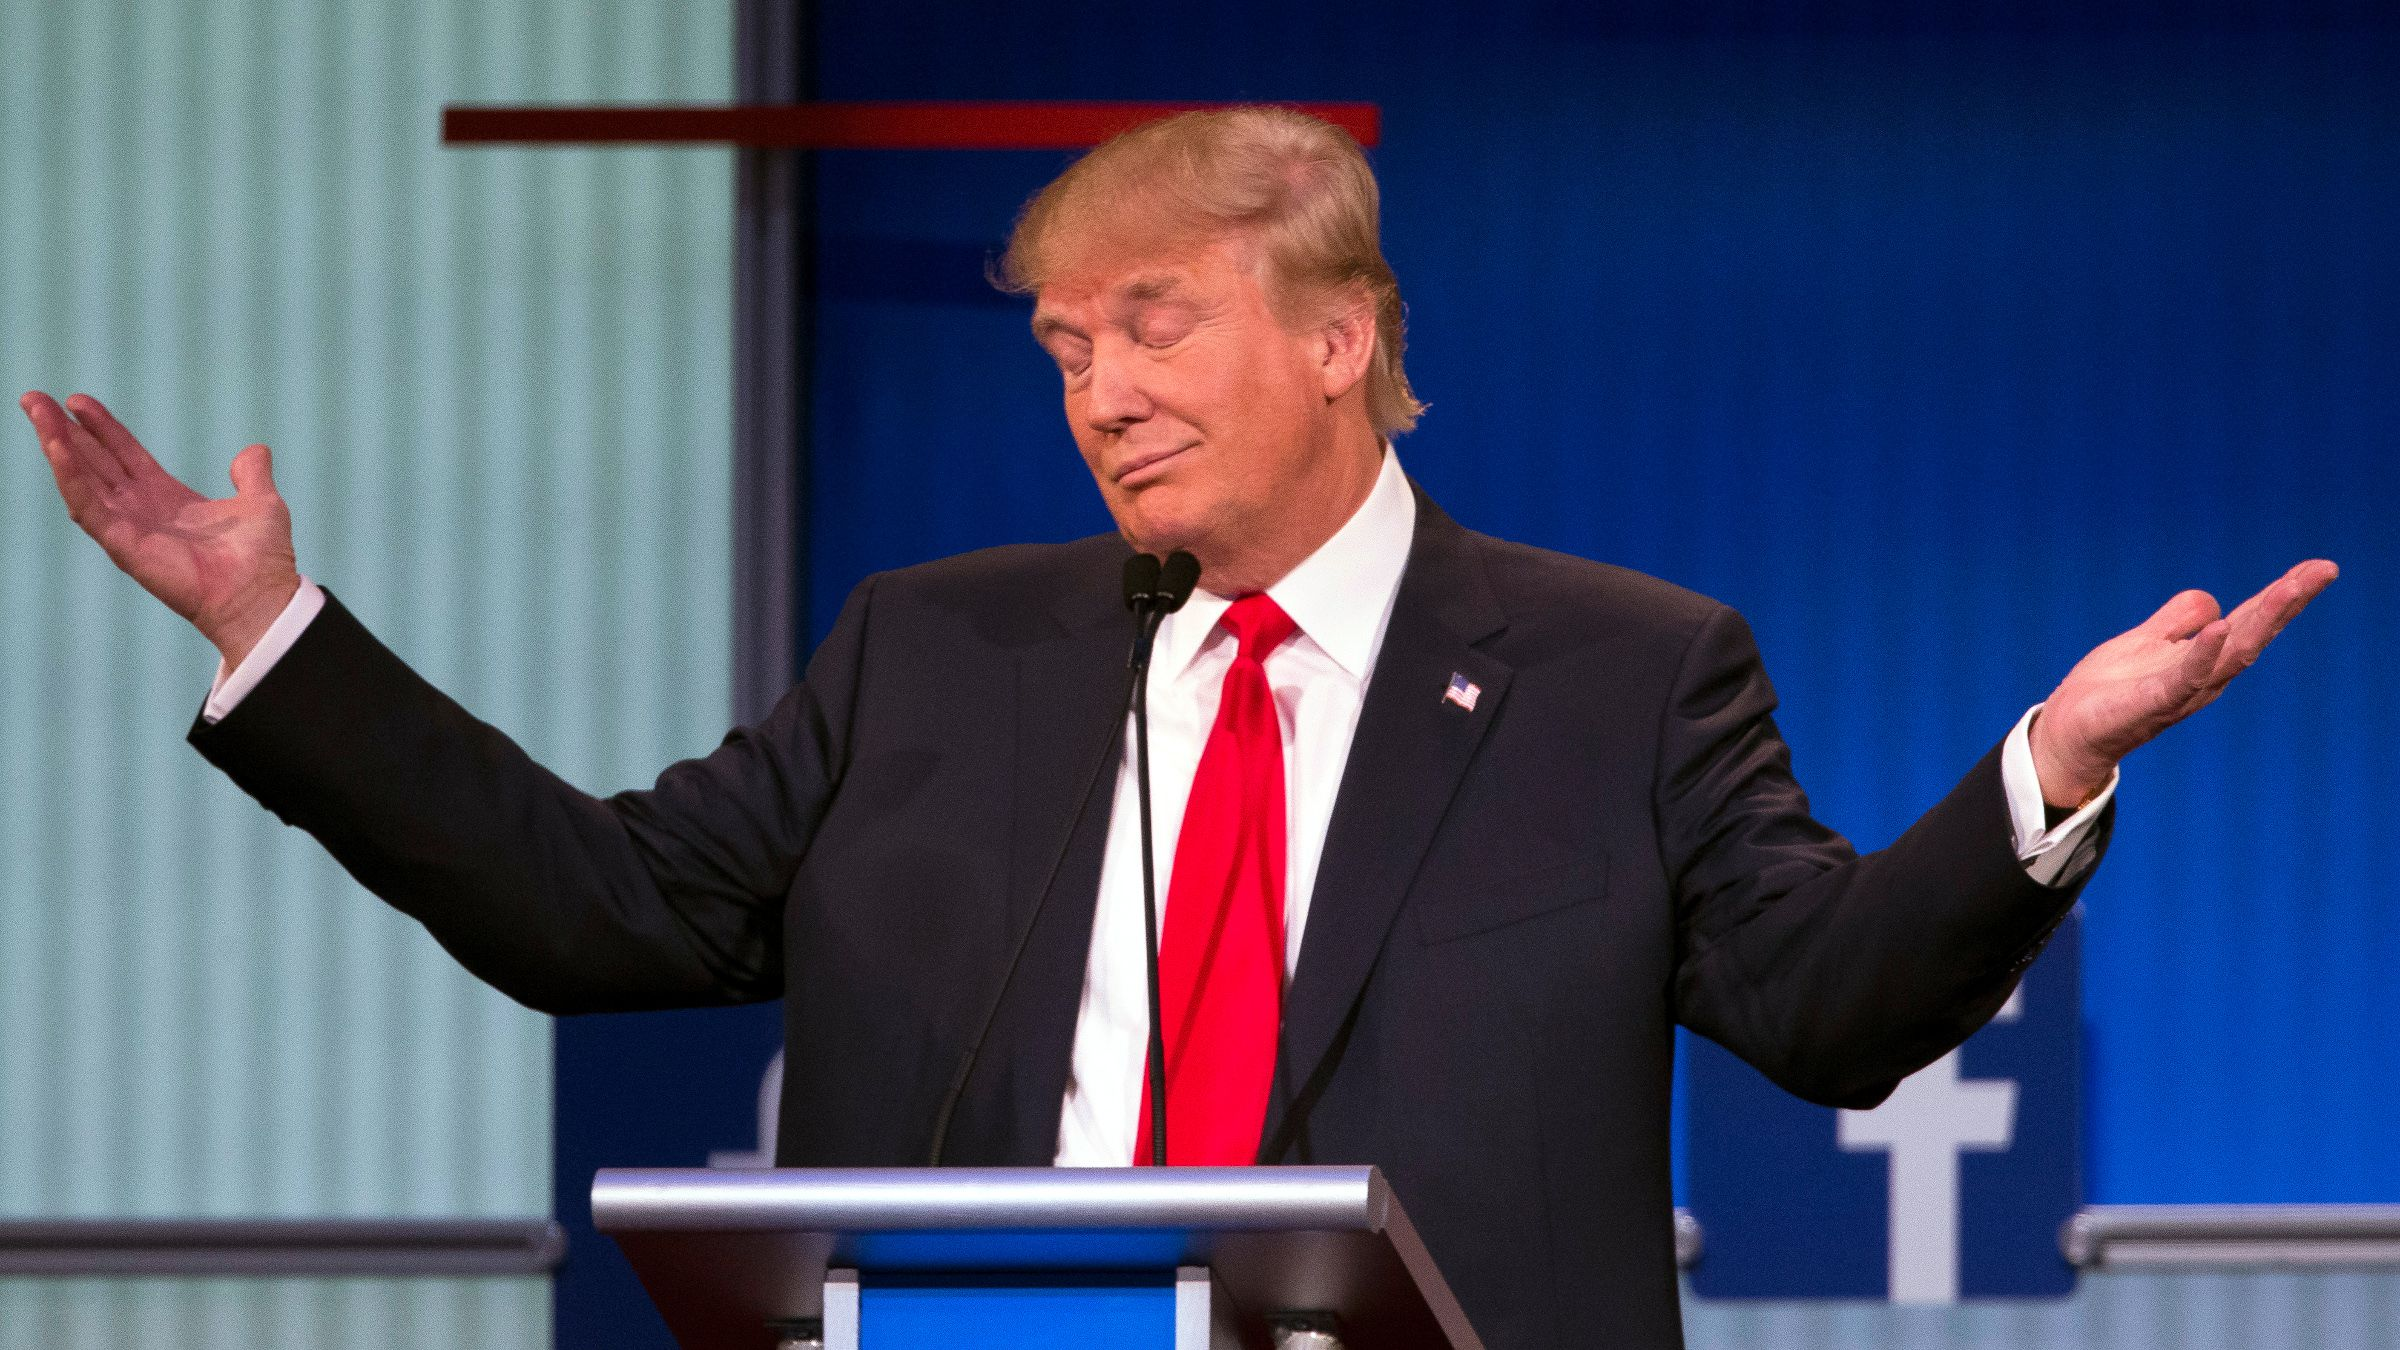 Republican presidential candidate Donald Trump gestures during the first Republican presidential debate at the Quicken Loans Arena Thursday, Aug. 6, 2015, in Cleveland.